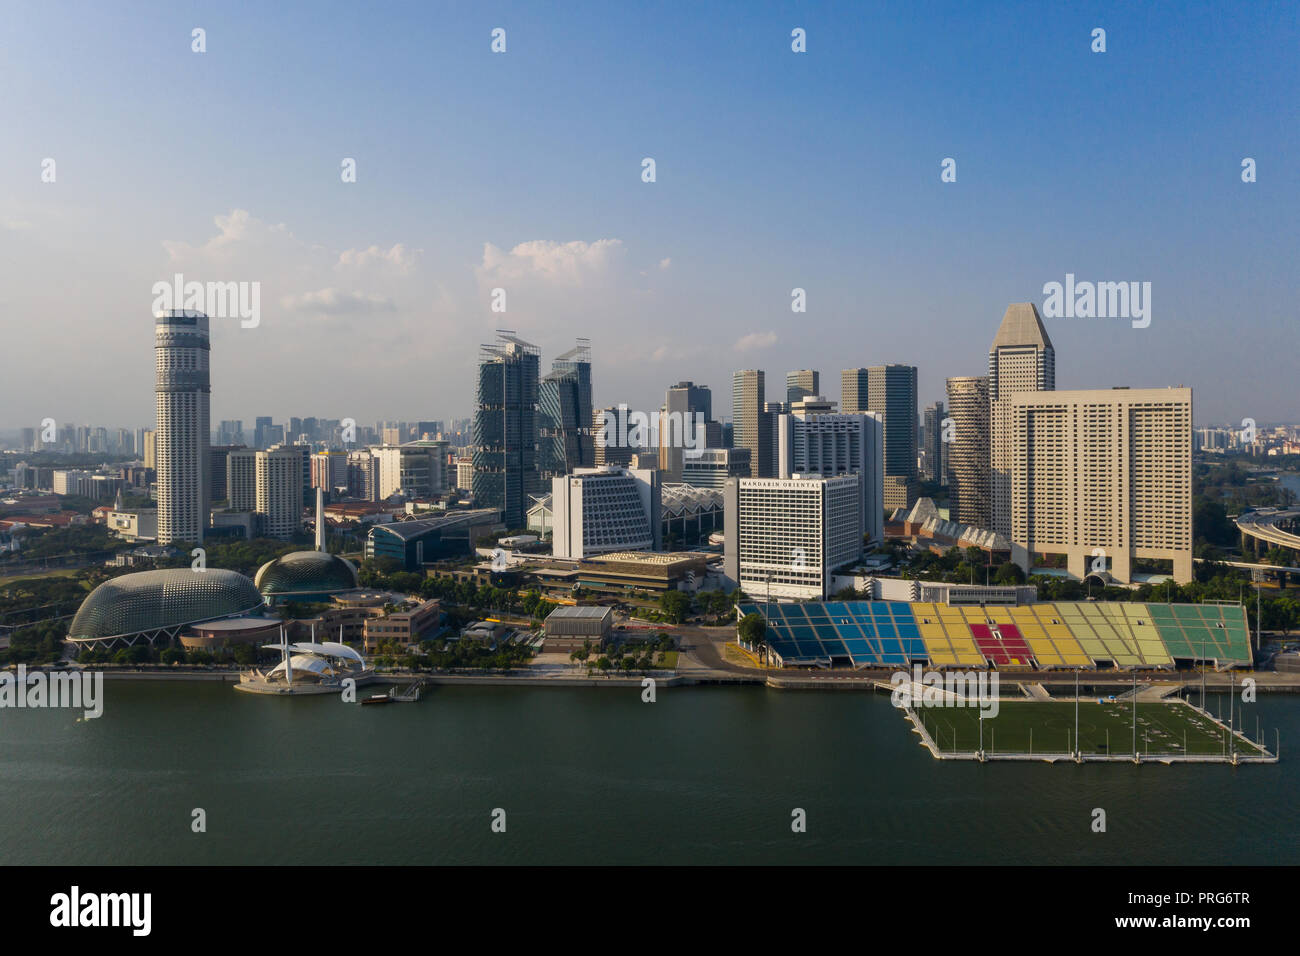 aerial-view-of-raffles-ave-area-in-singa